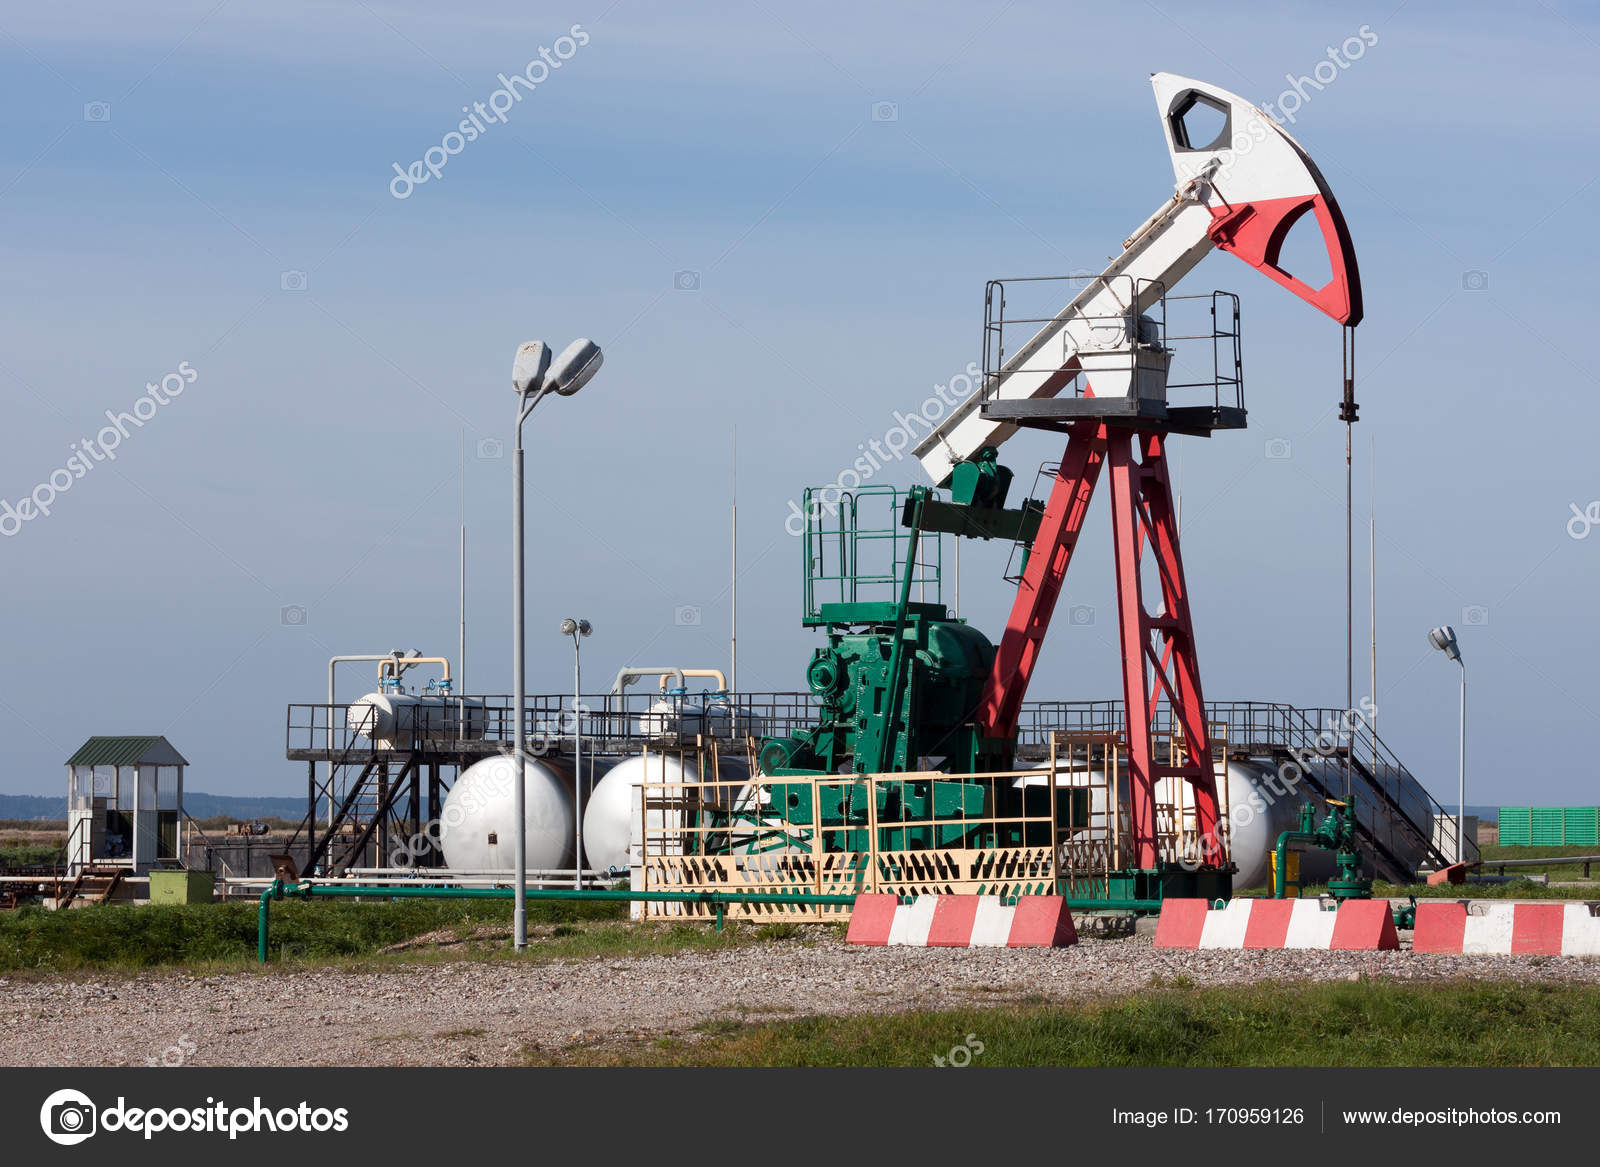 Oil pump, tanks and other oil extraction equipment on the